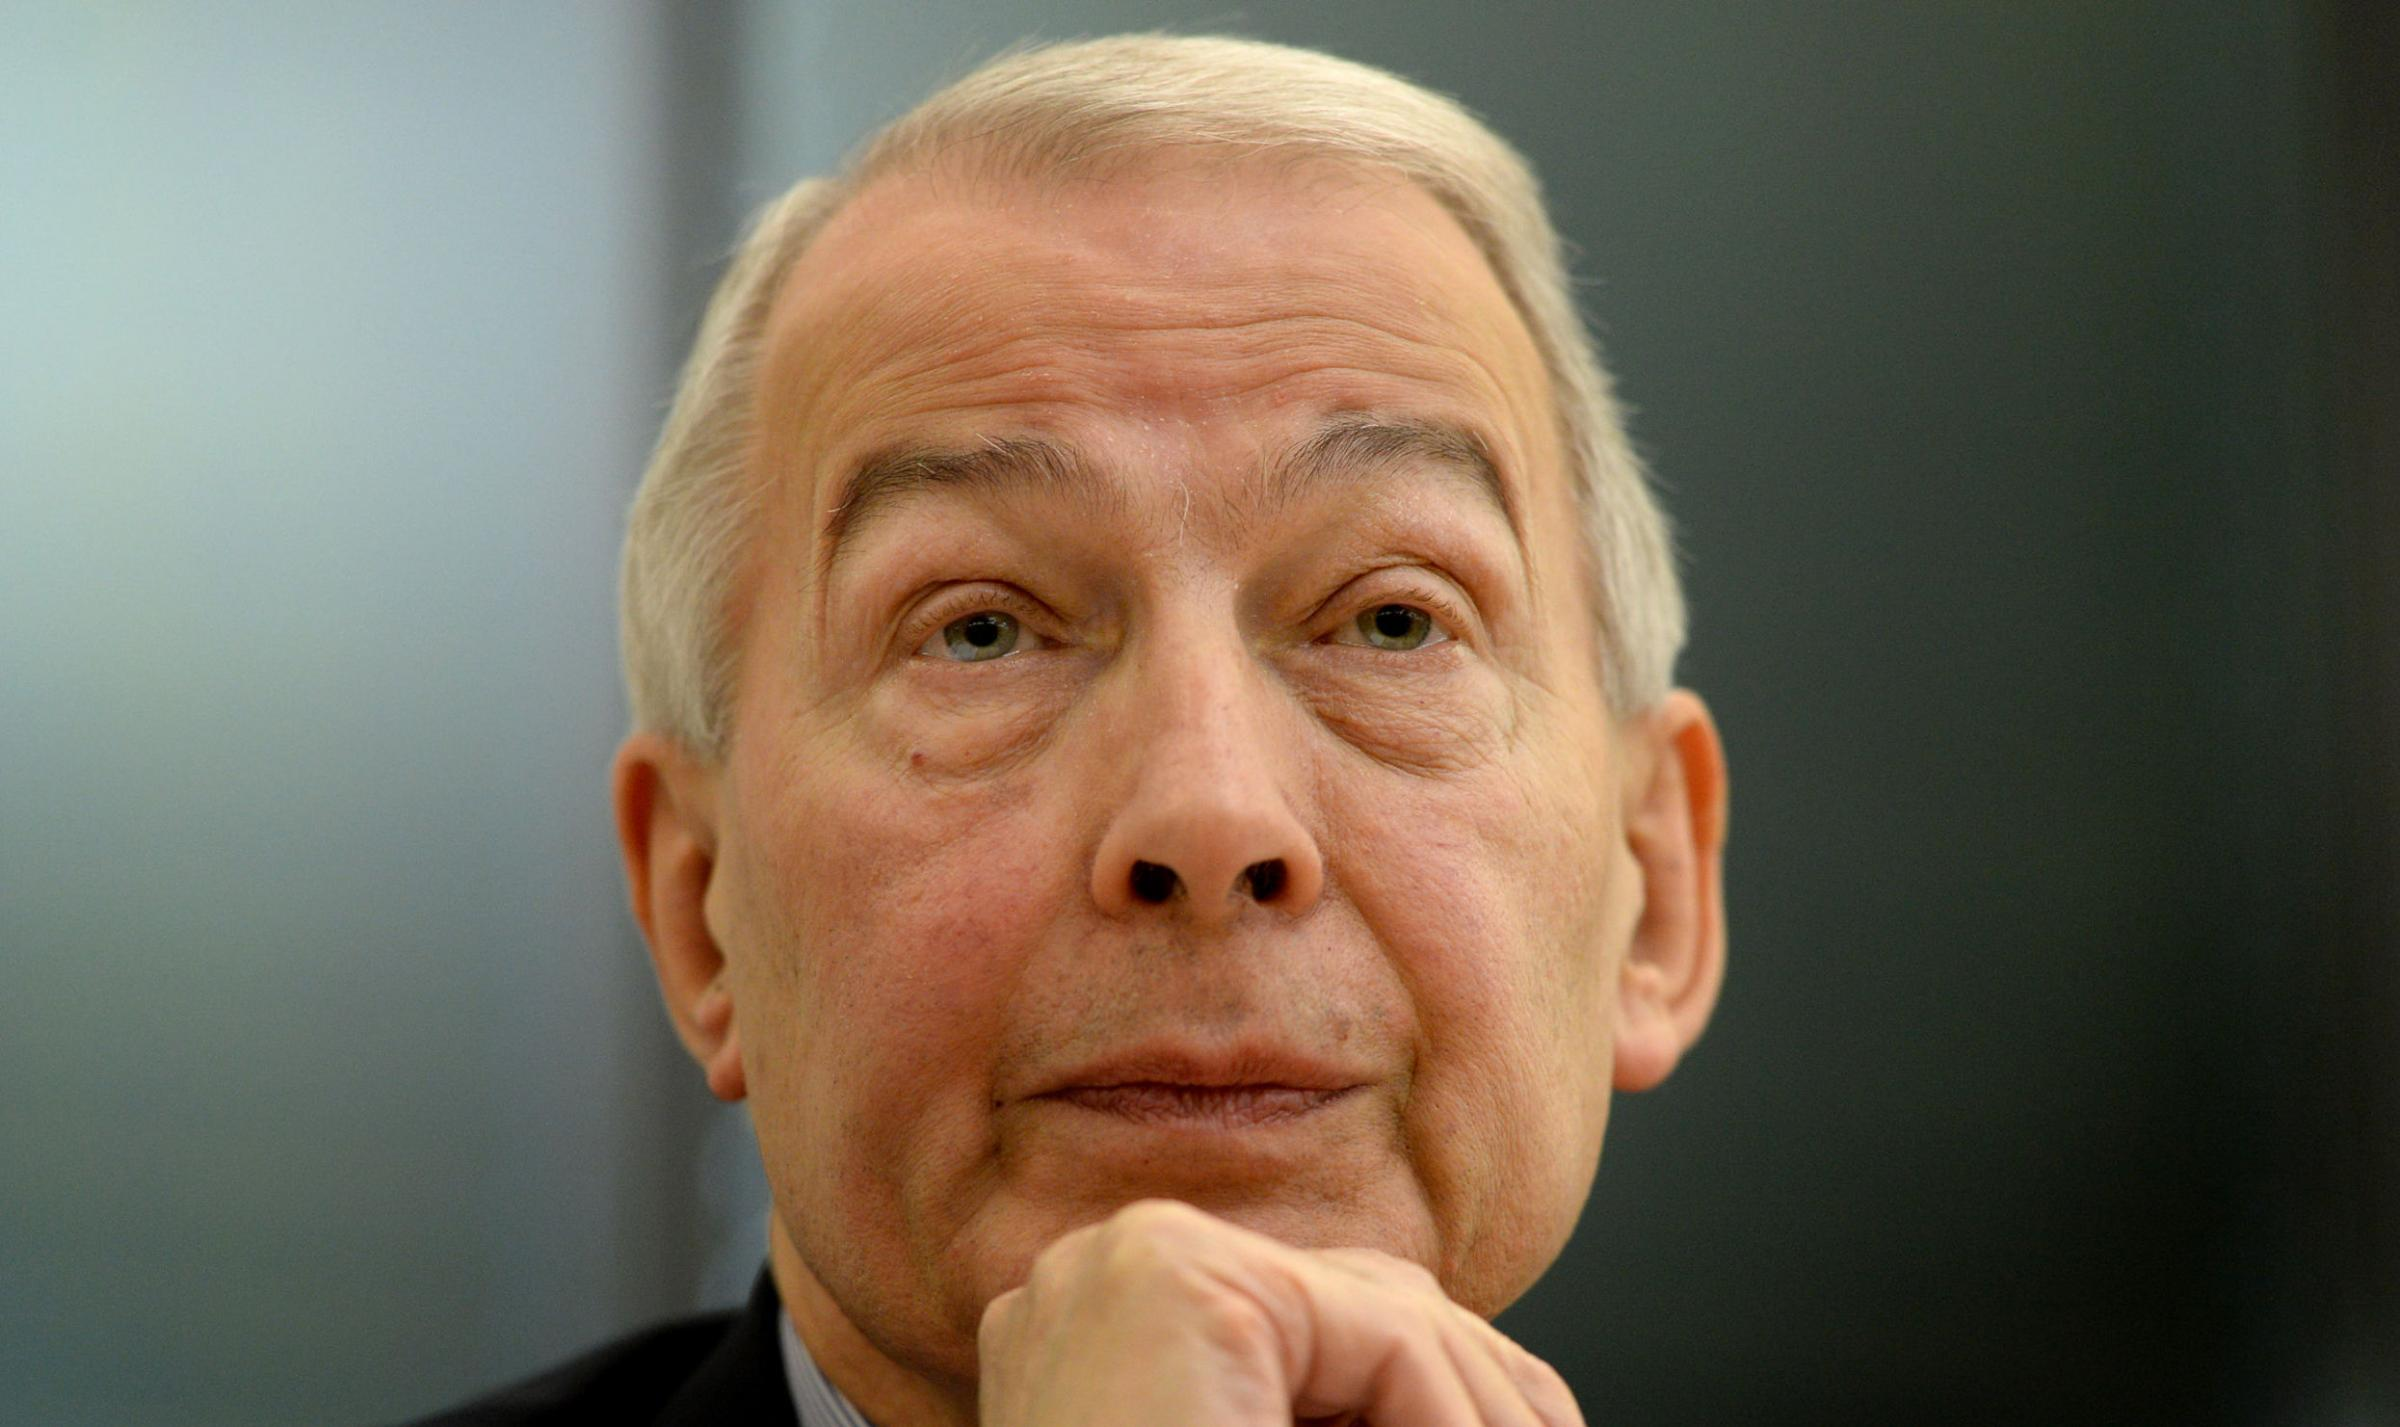 Labour's Frank Field said the companies were 'feasting on what was soon to become a carcass'